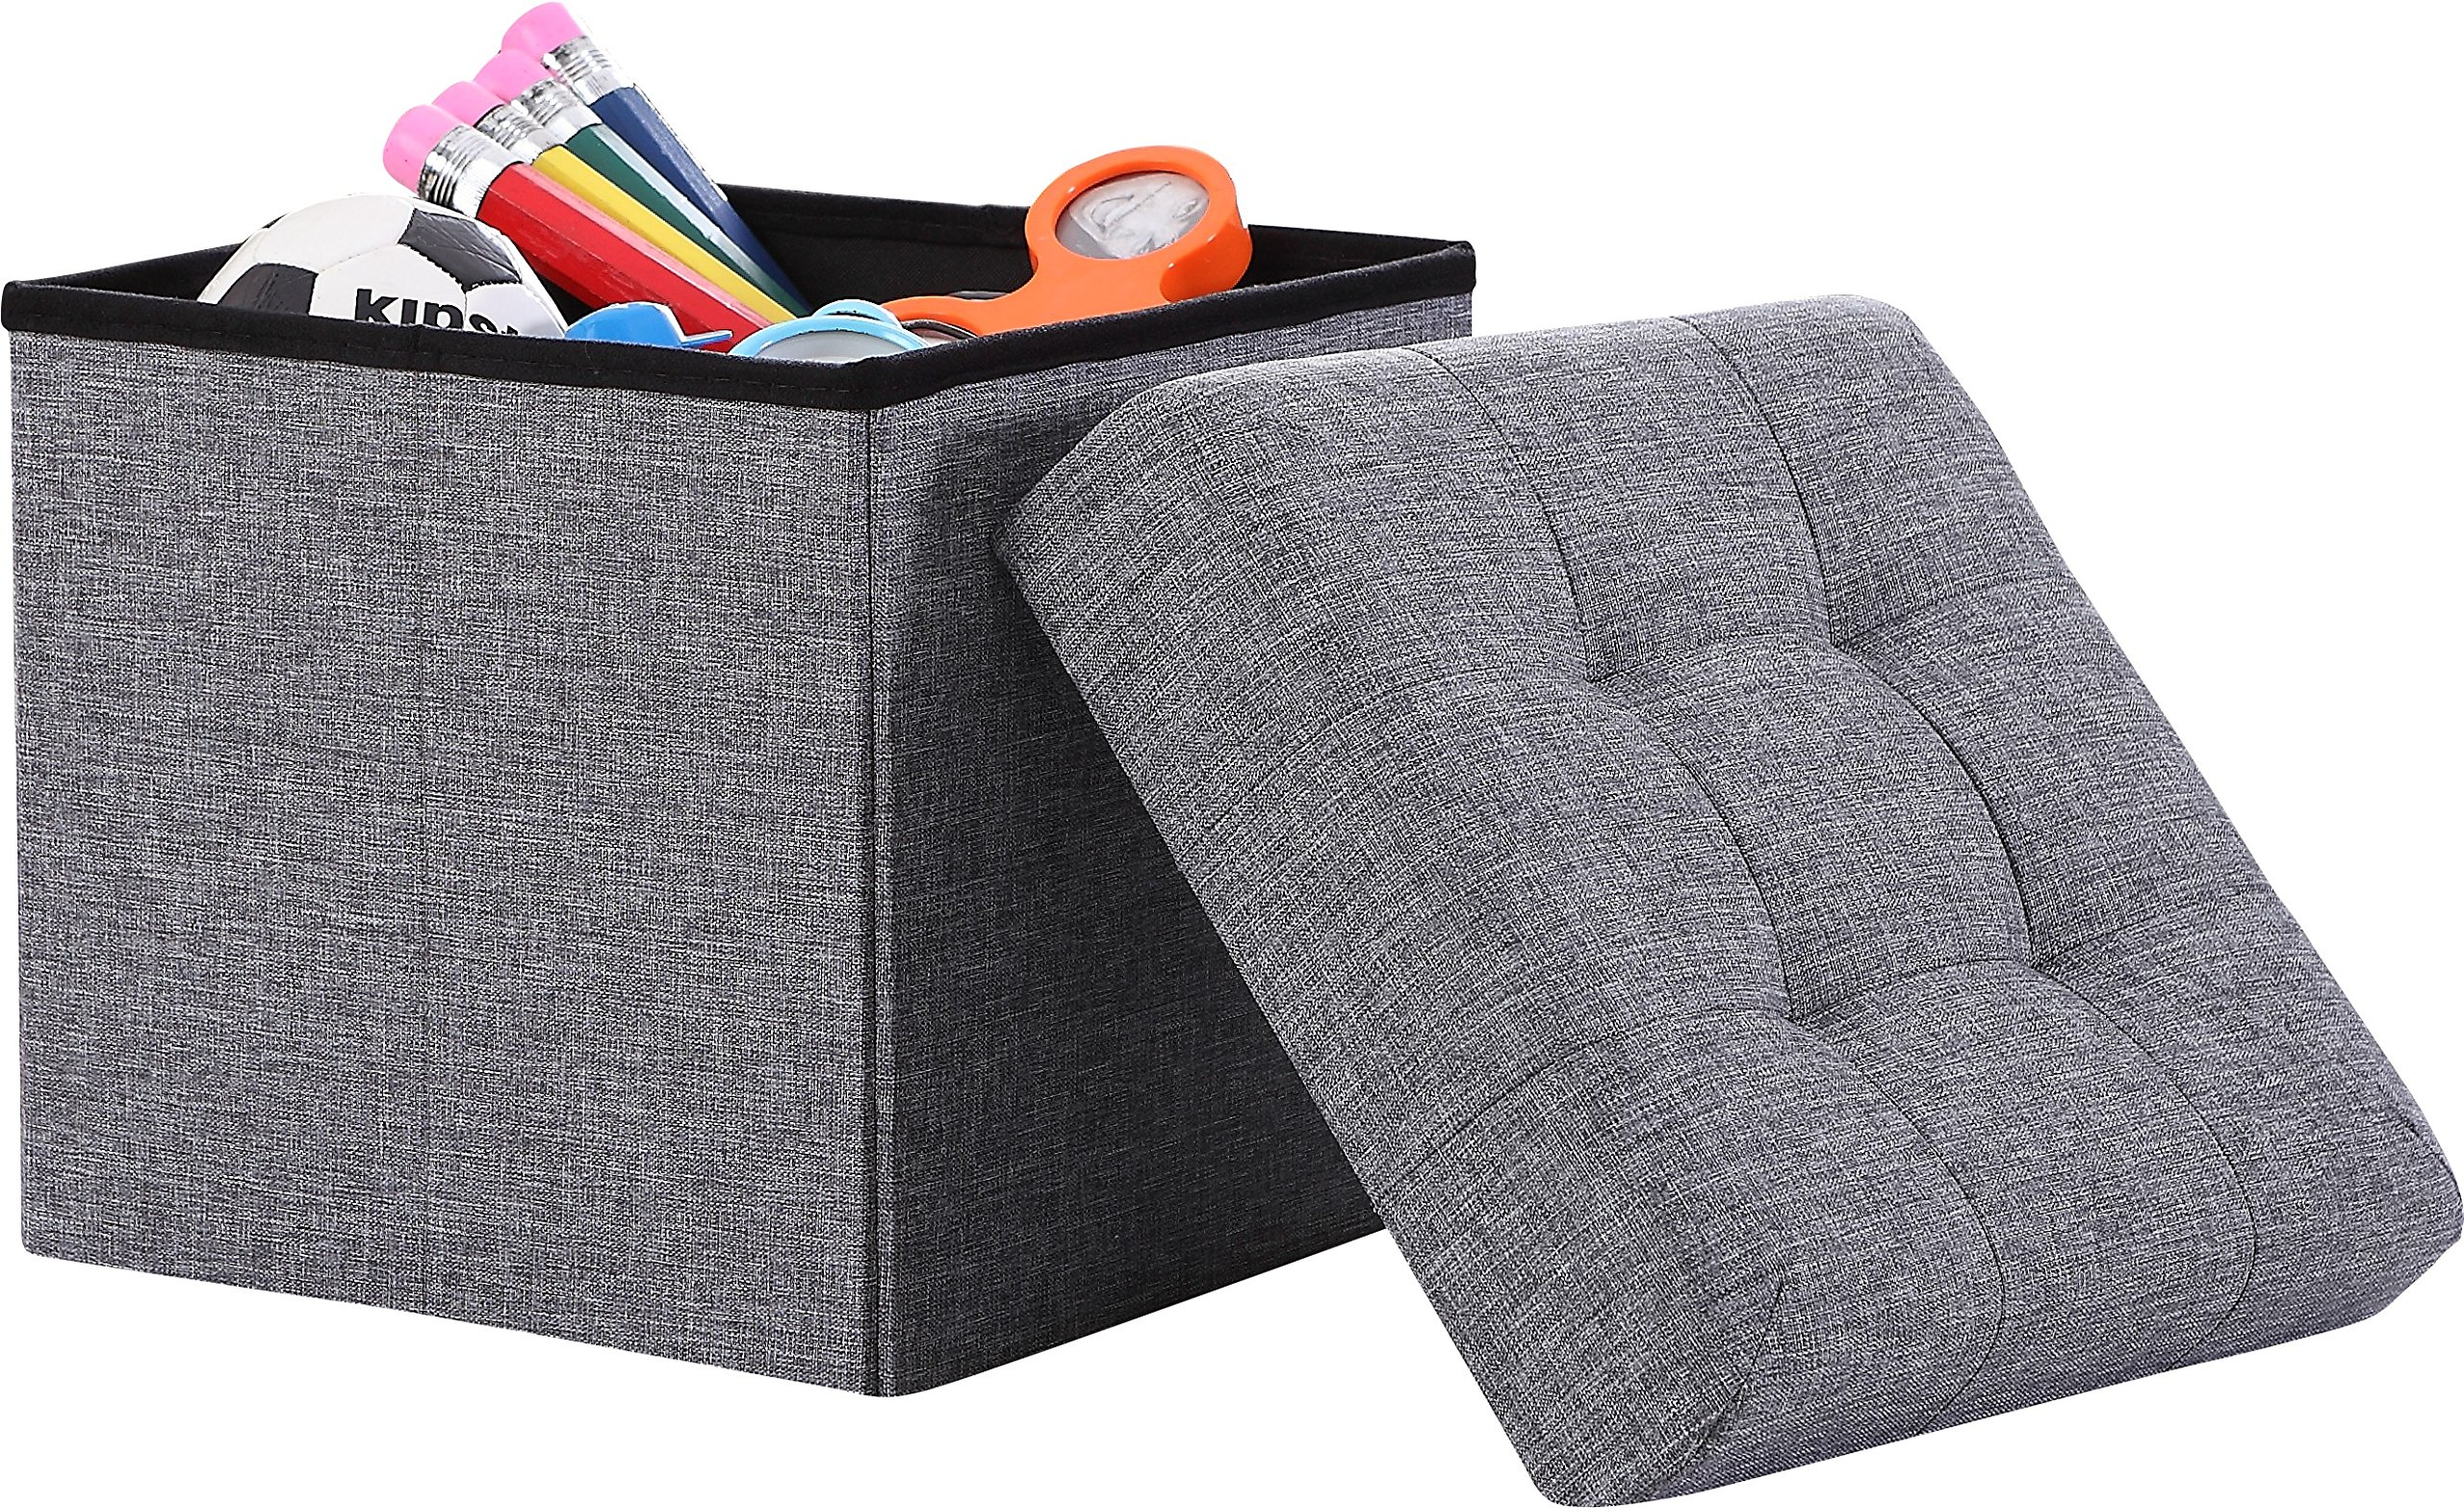 Ornavo Home Foldable Tufted Linen Storage Ottoman Square Cube Foot Rest Stool/Seat - 15'' x 15'' x 15'' (Grey) by Ornavo Home